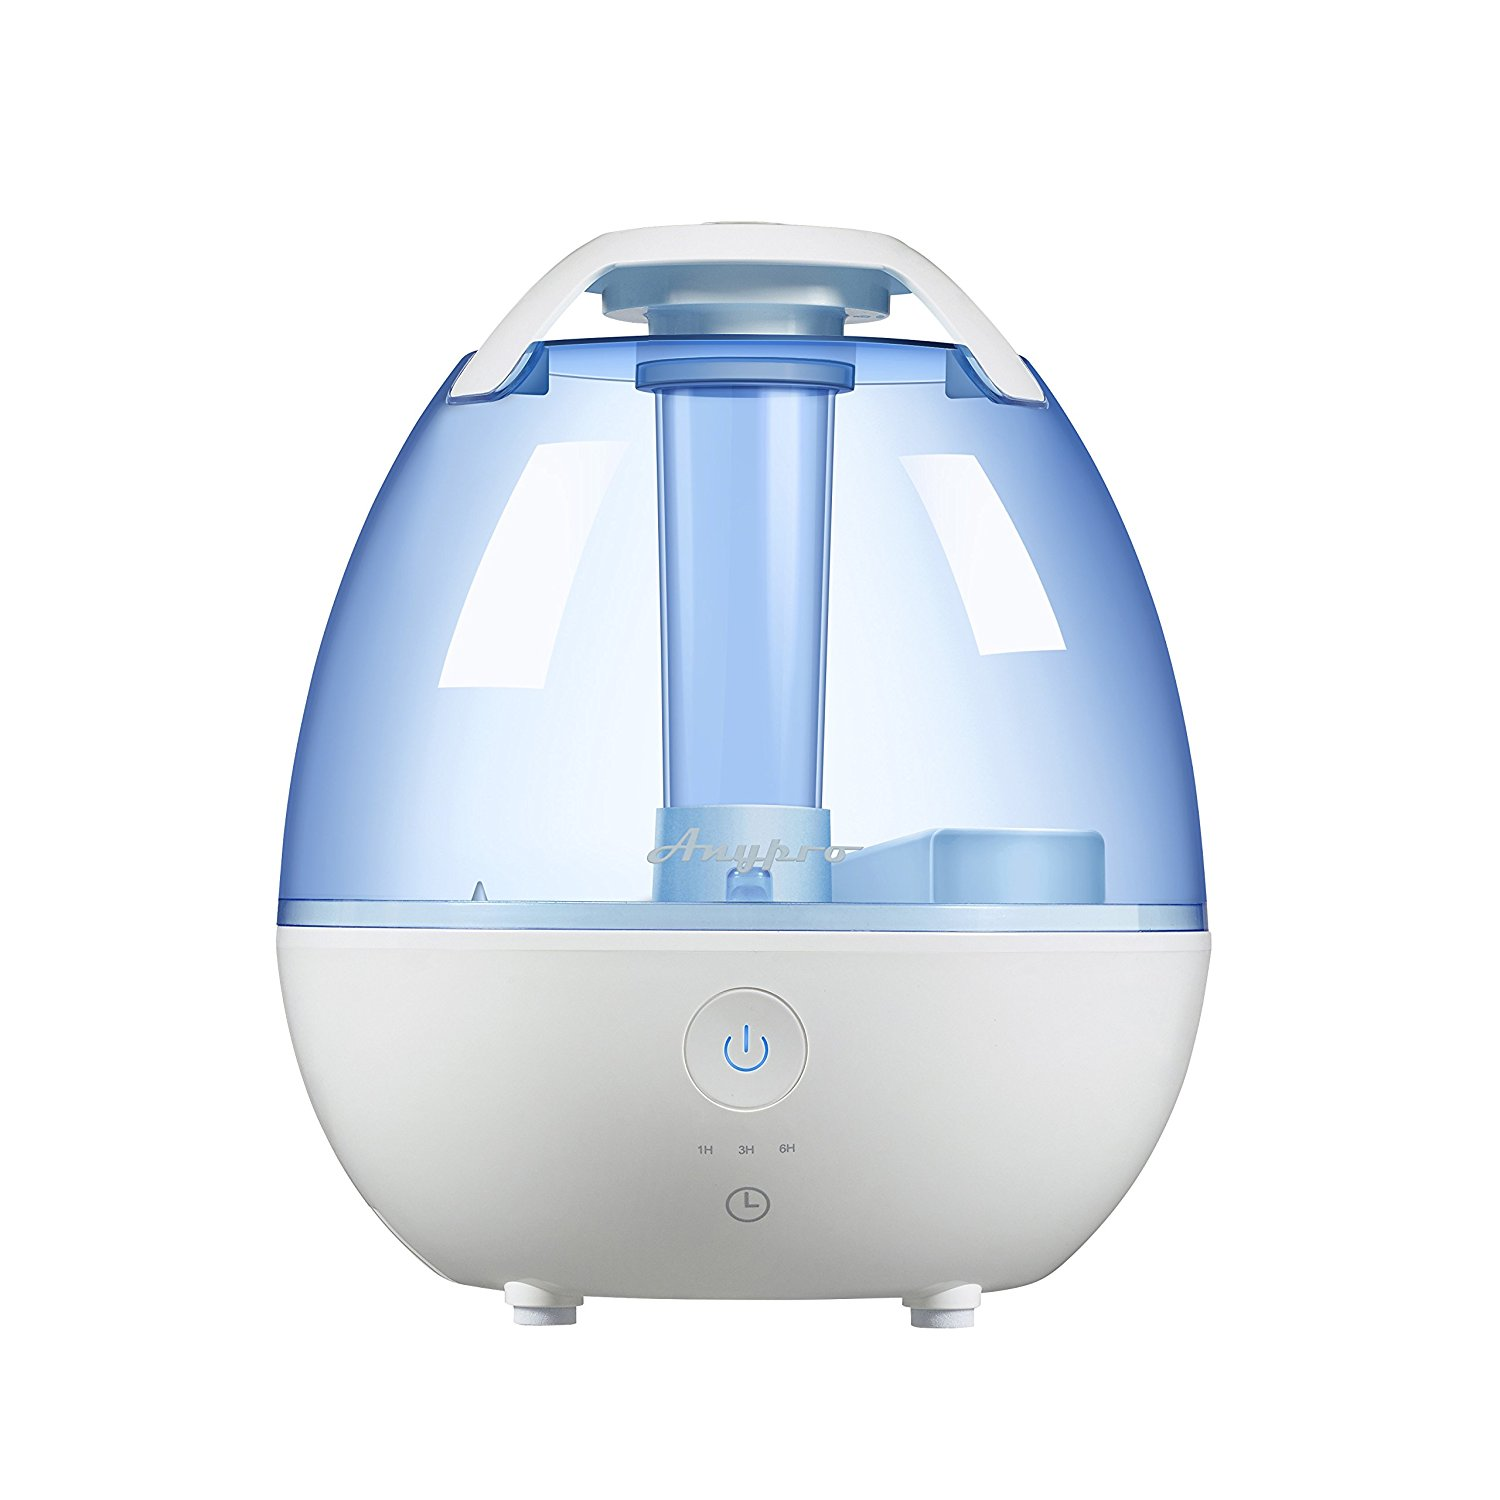 anypro cool mist humidifier, best humidifier for baby, humidifier for baby